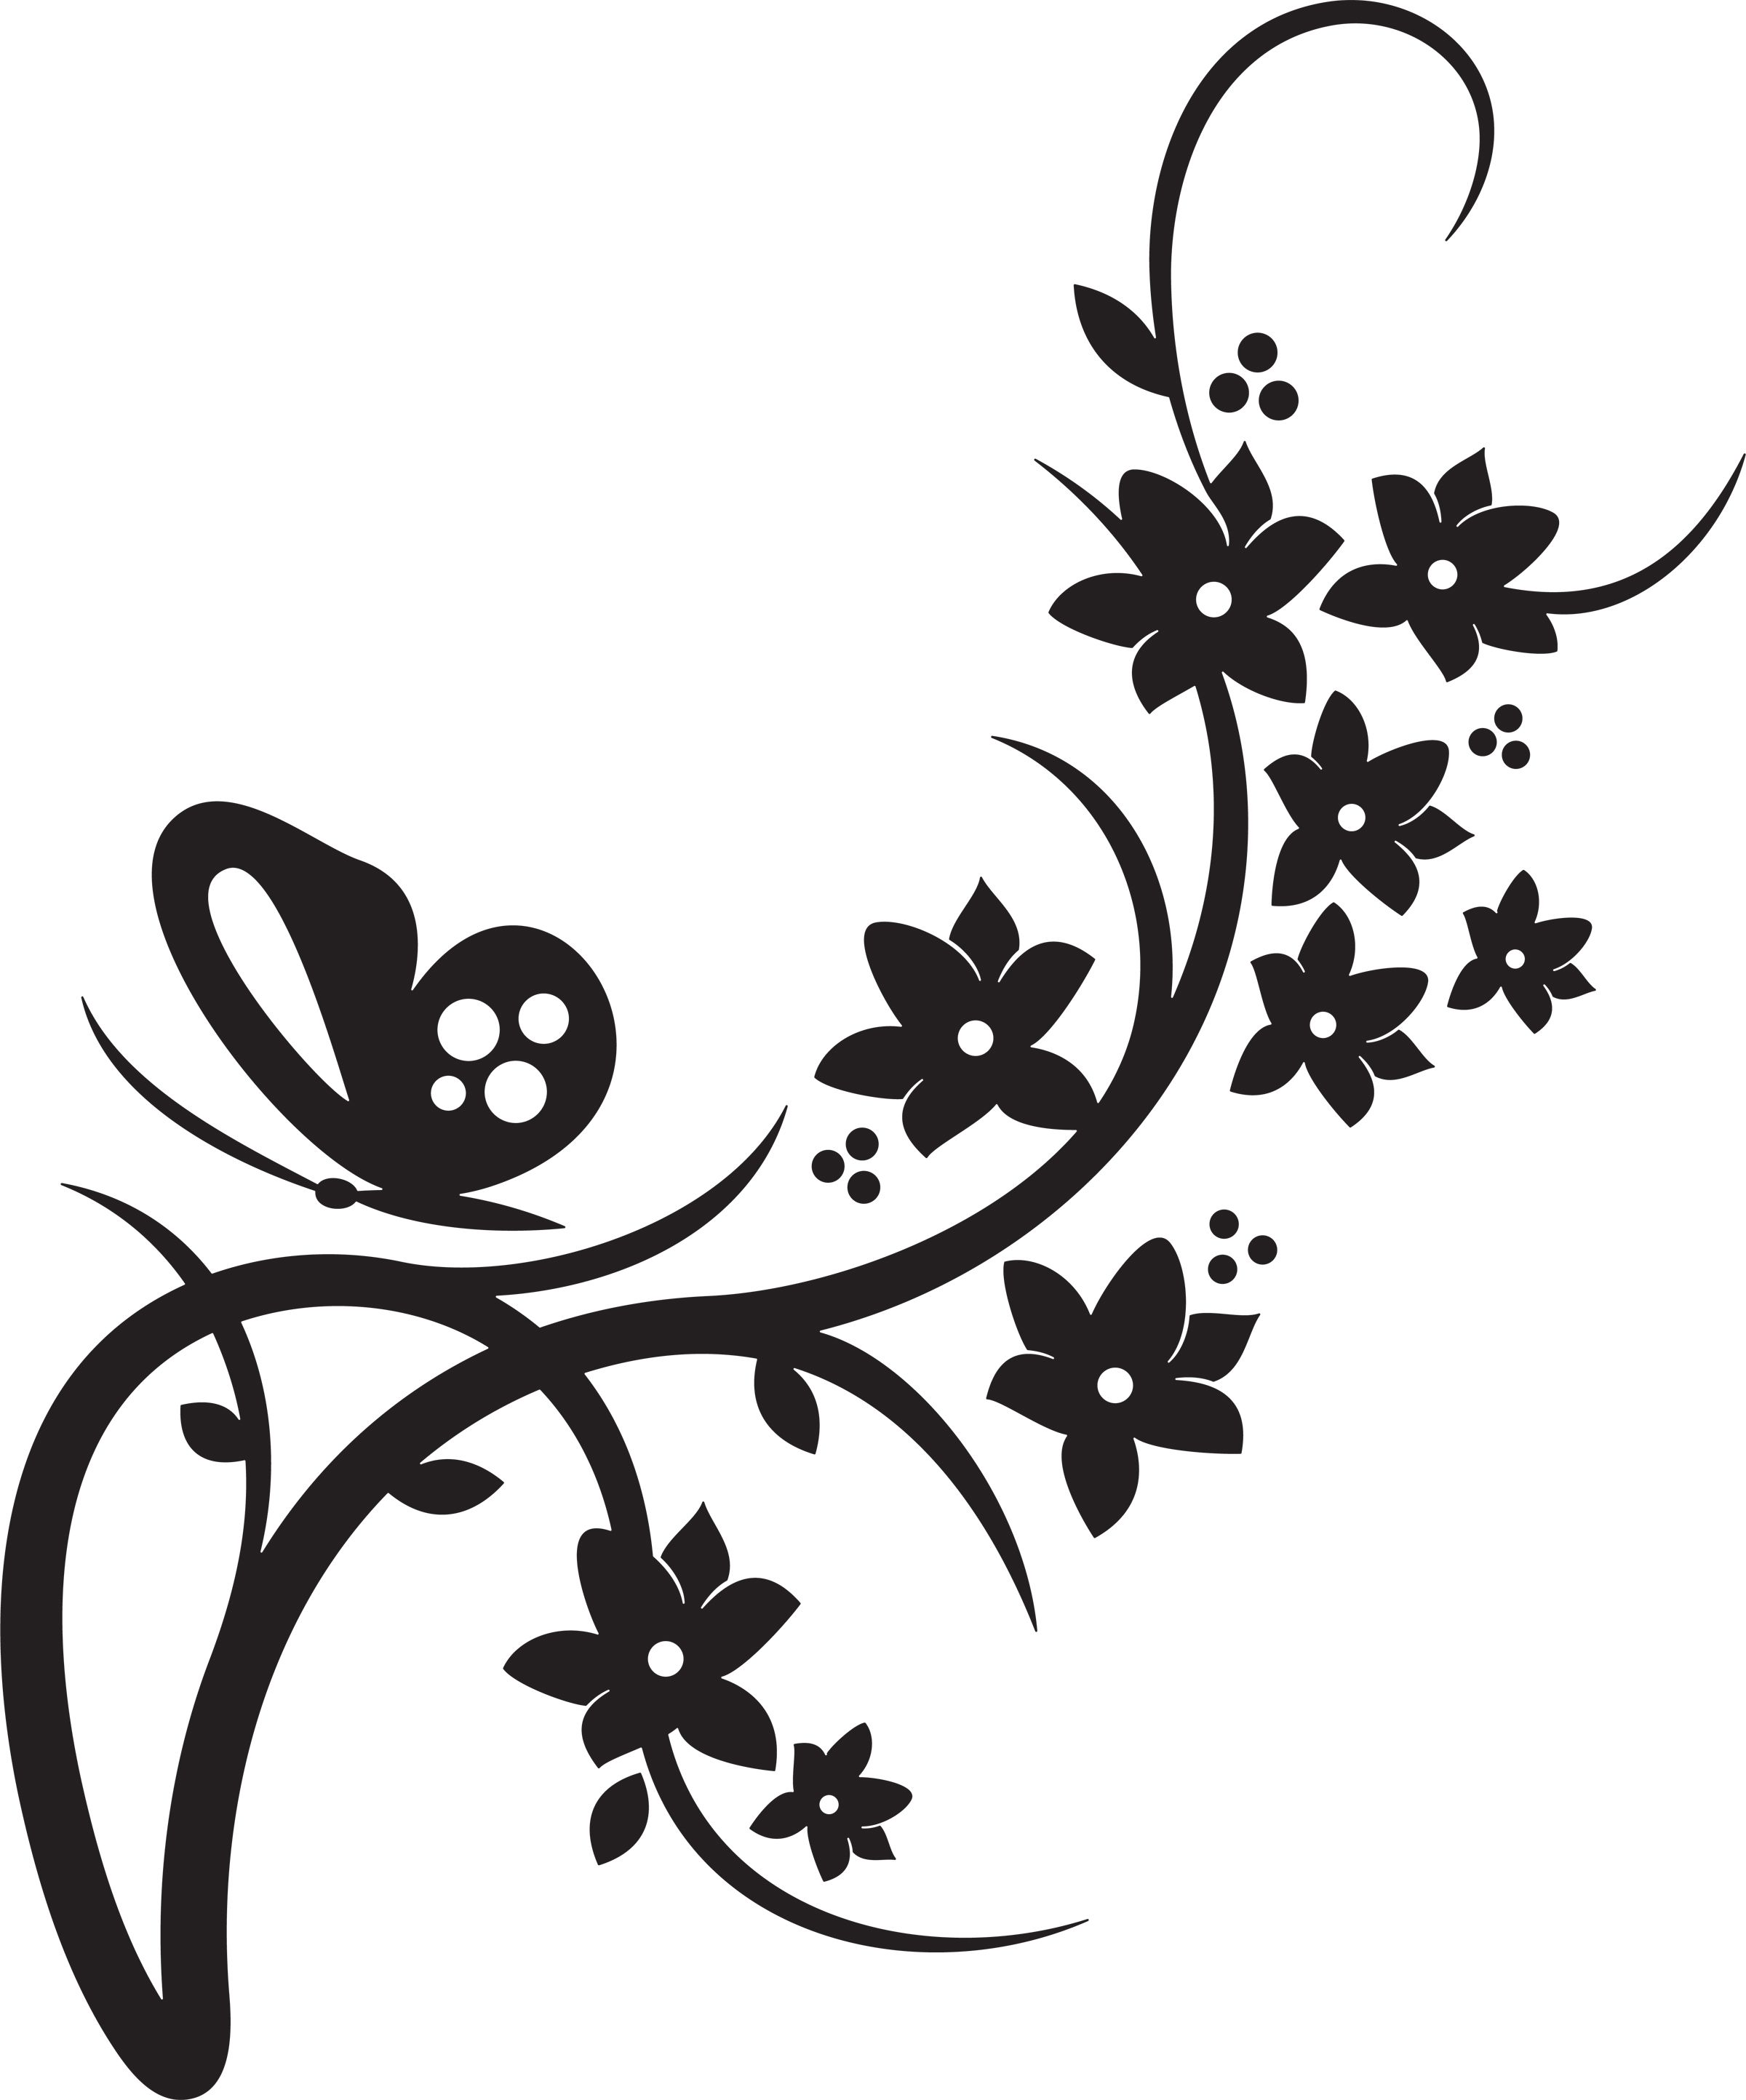 Wedding clipart butterfly wedding custom clip art silhouette cameo ideas pinterest clip - Design art black and white ...